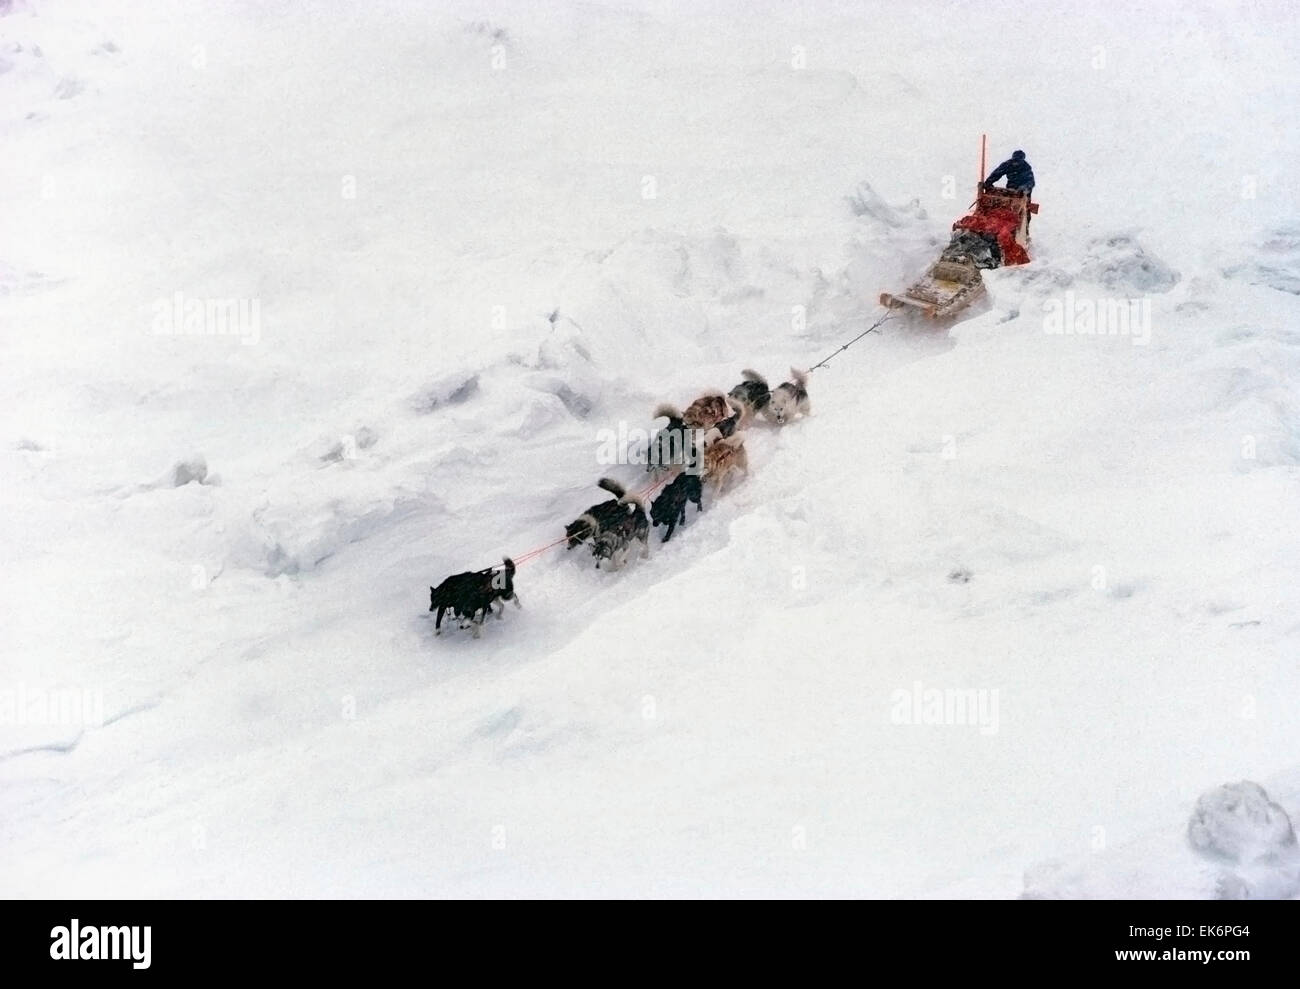 Dogsled team and mushers traveling in harsh winter arctic conditions - Stock Image